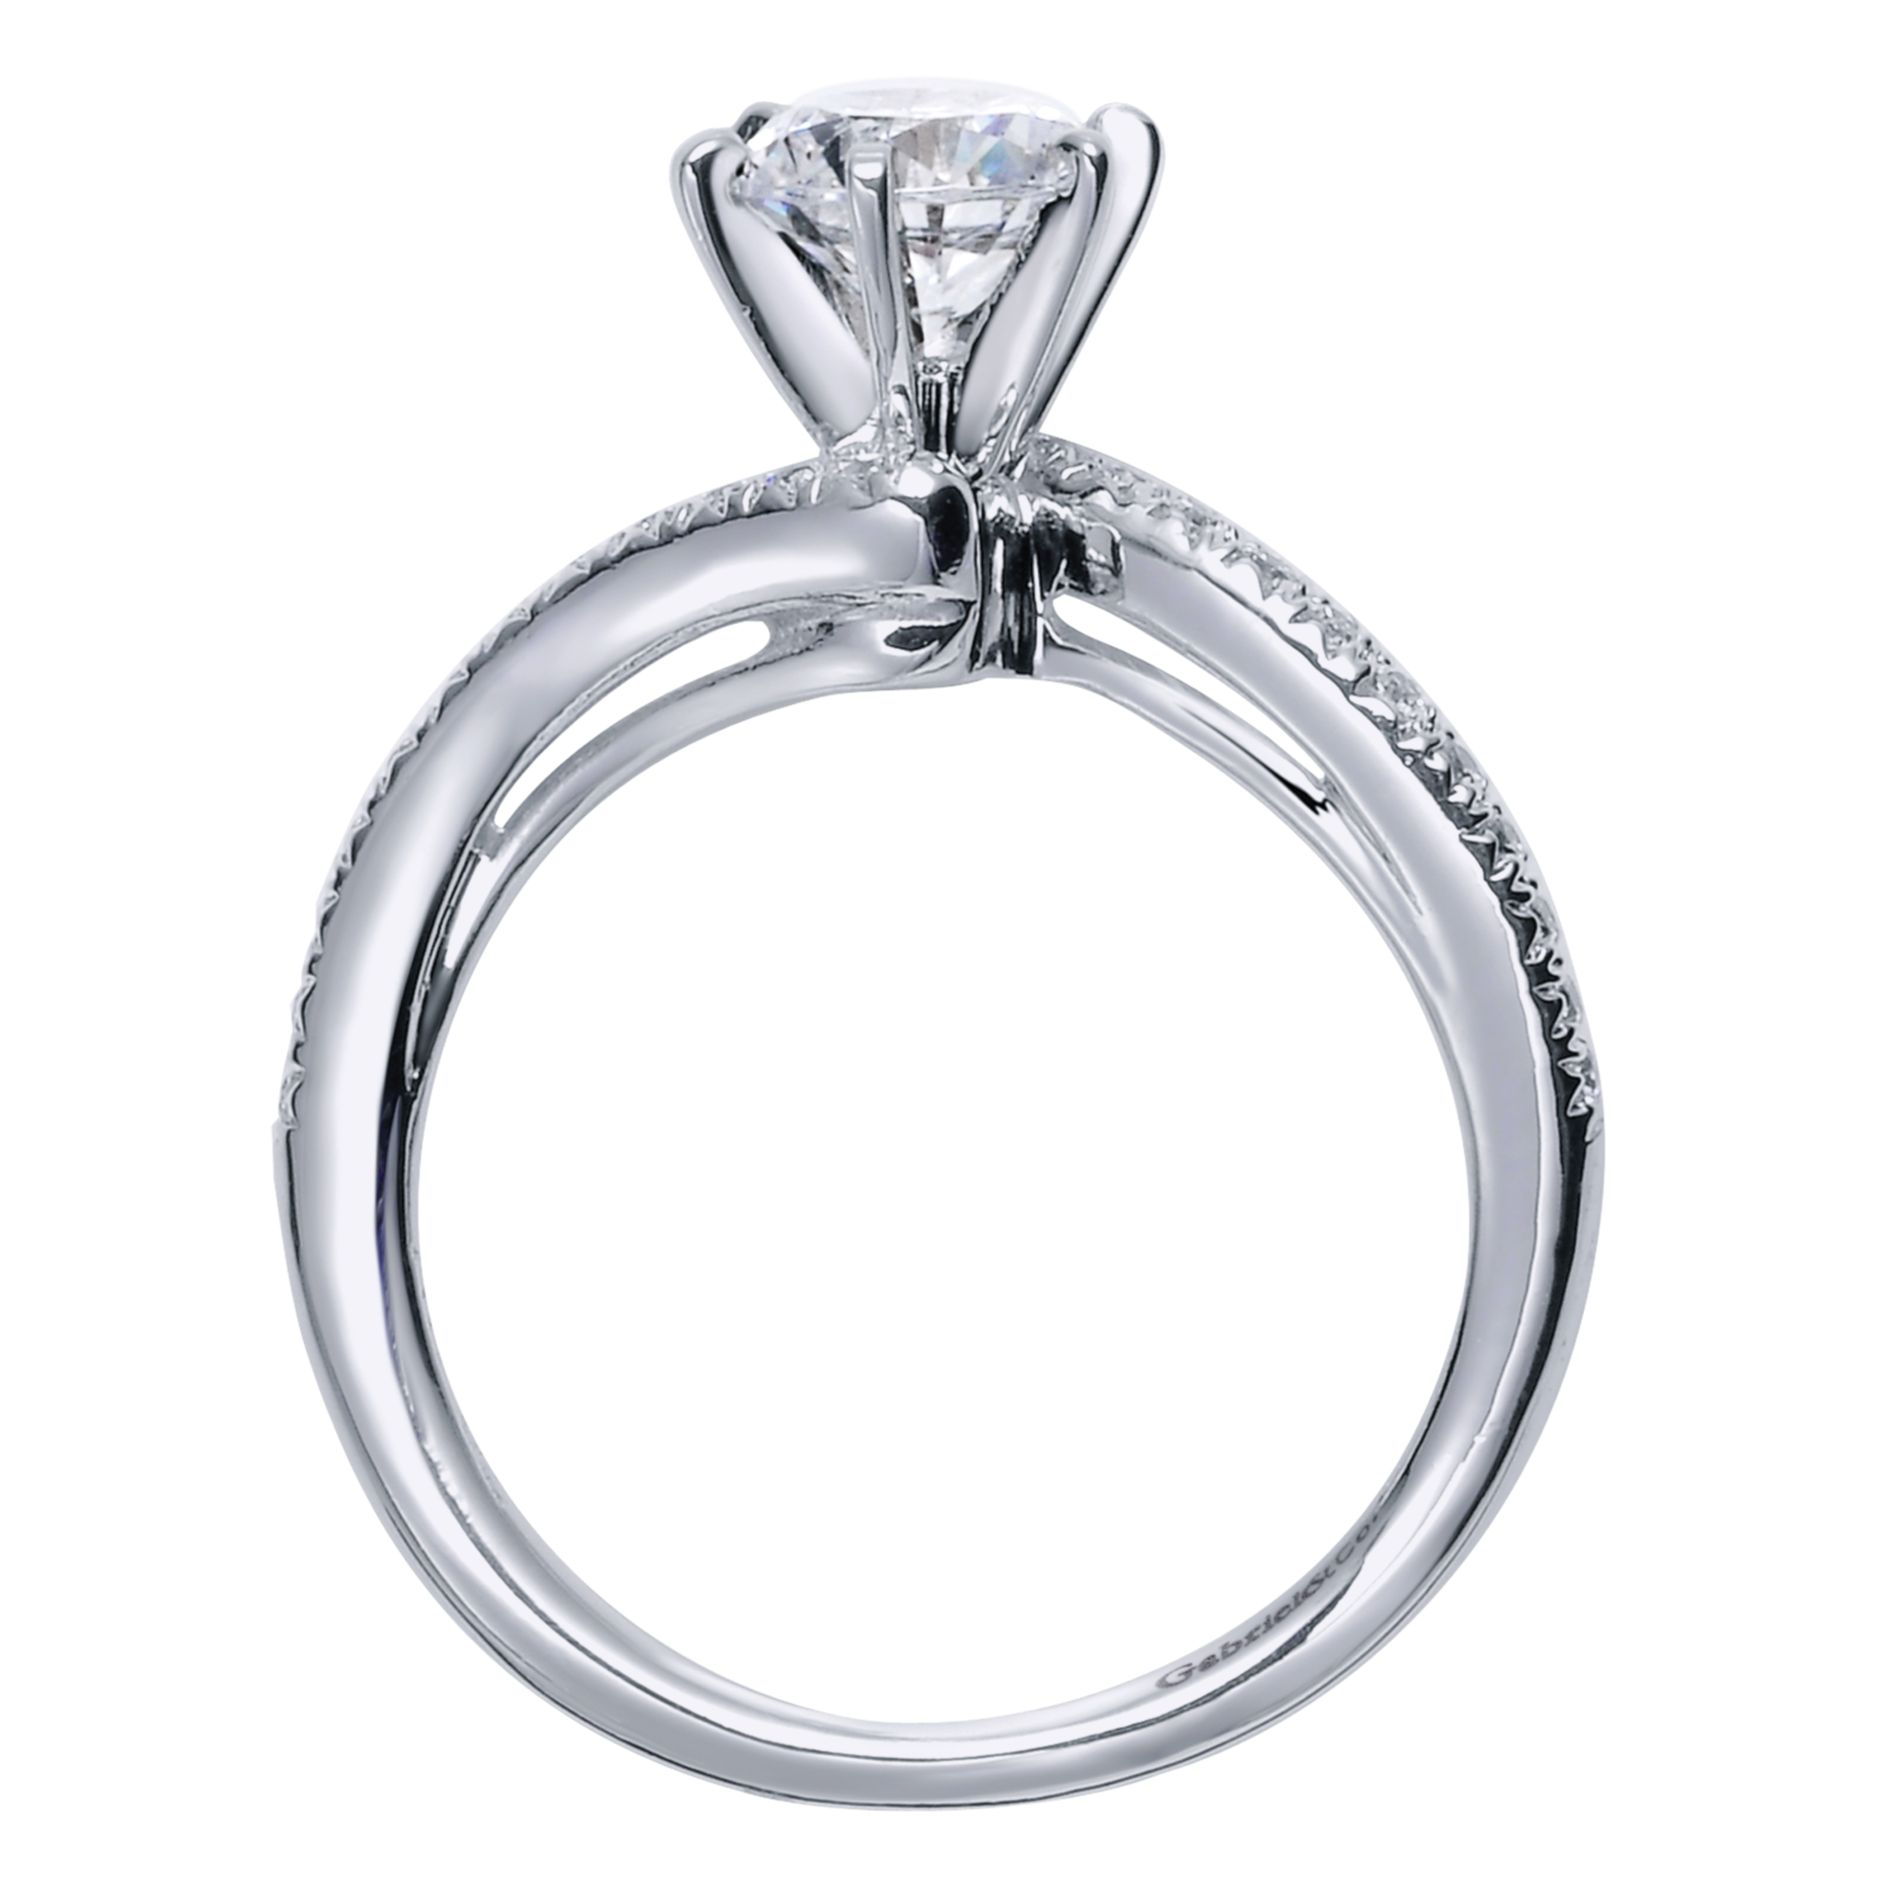 Engagement Rings - WHITE GOLD ROUND BYPASS DIAMOND ENGAGEMENT RING - image #2